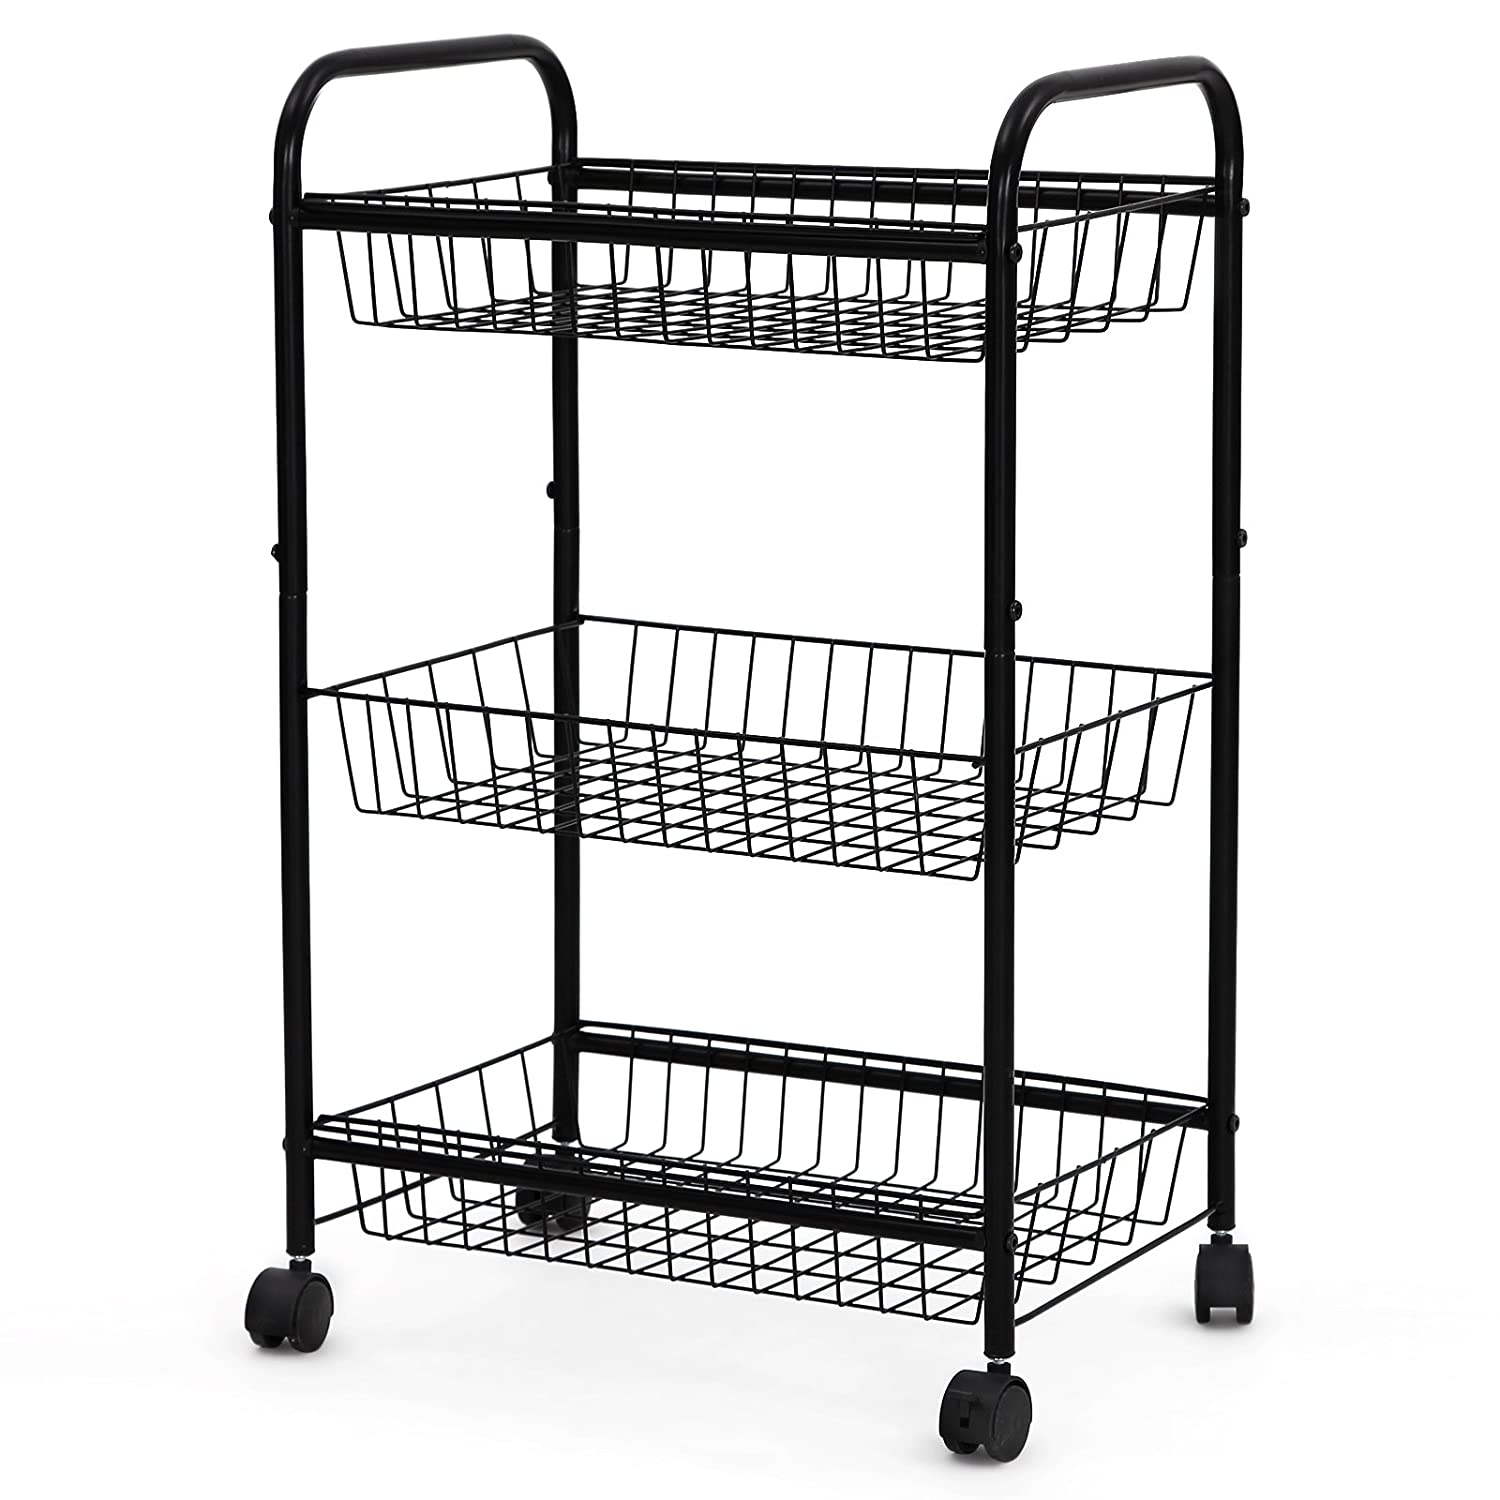 Upcart The All Terrain Stair Climbing Folding Cart